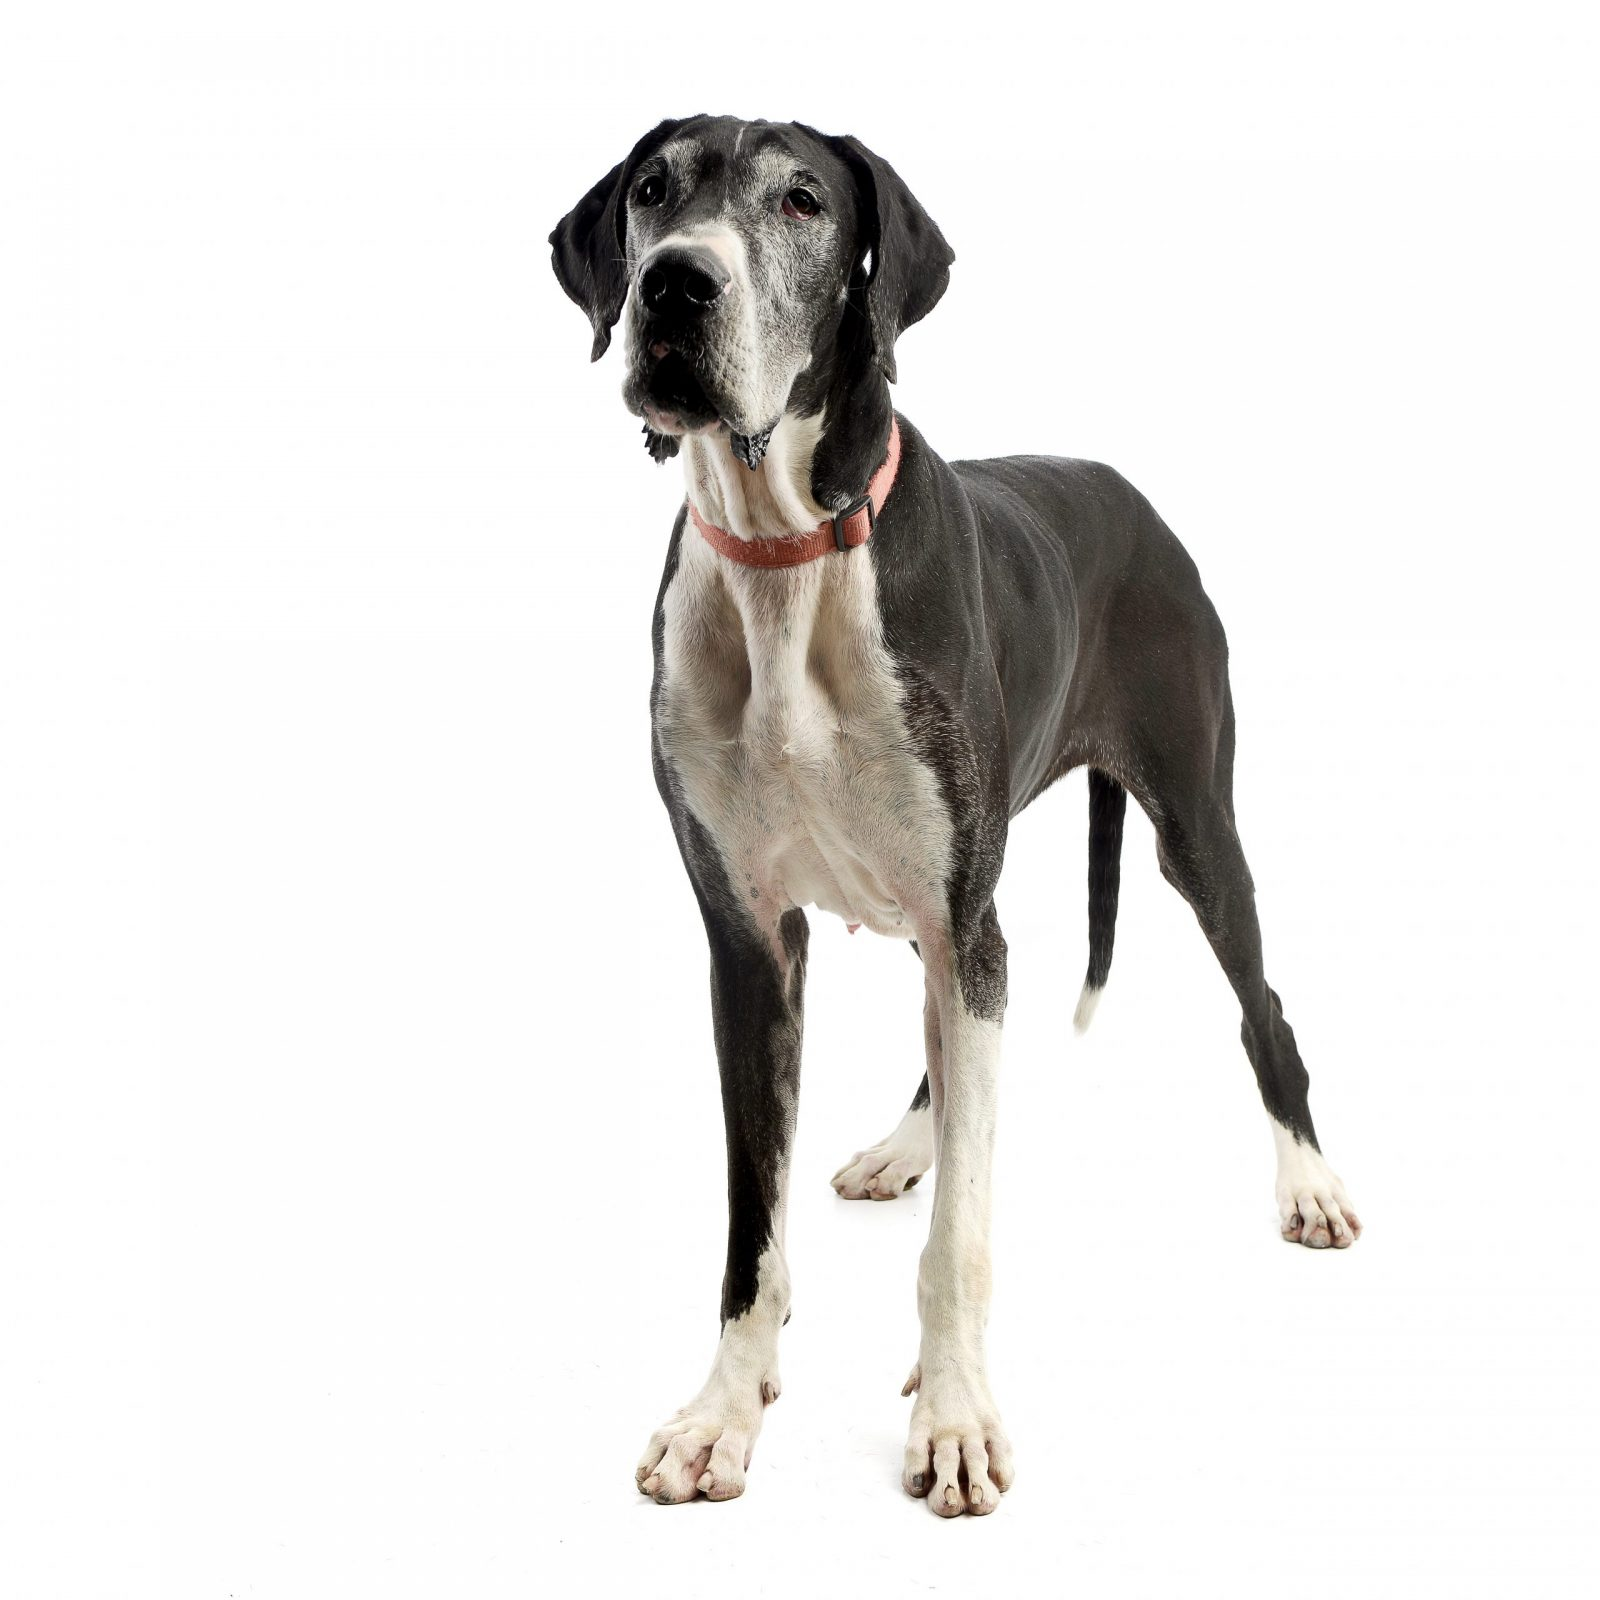 Studio shot of an adorable Great Dane dog standing on white background.